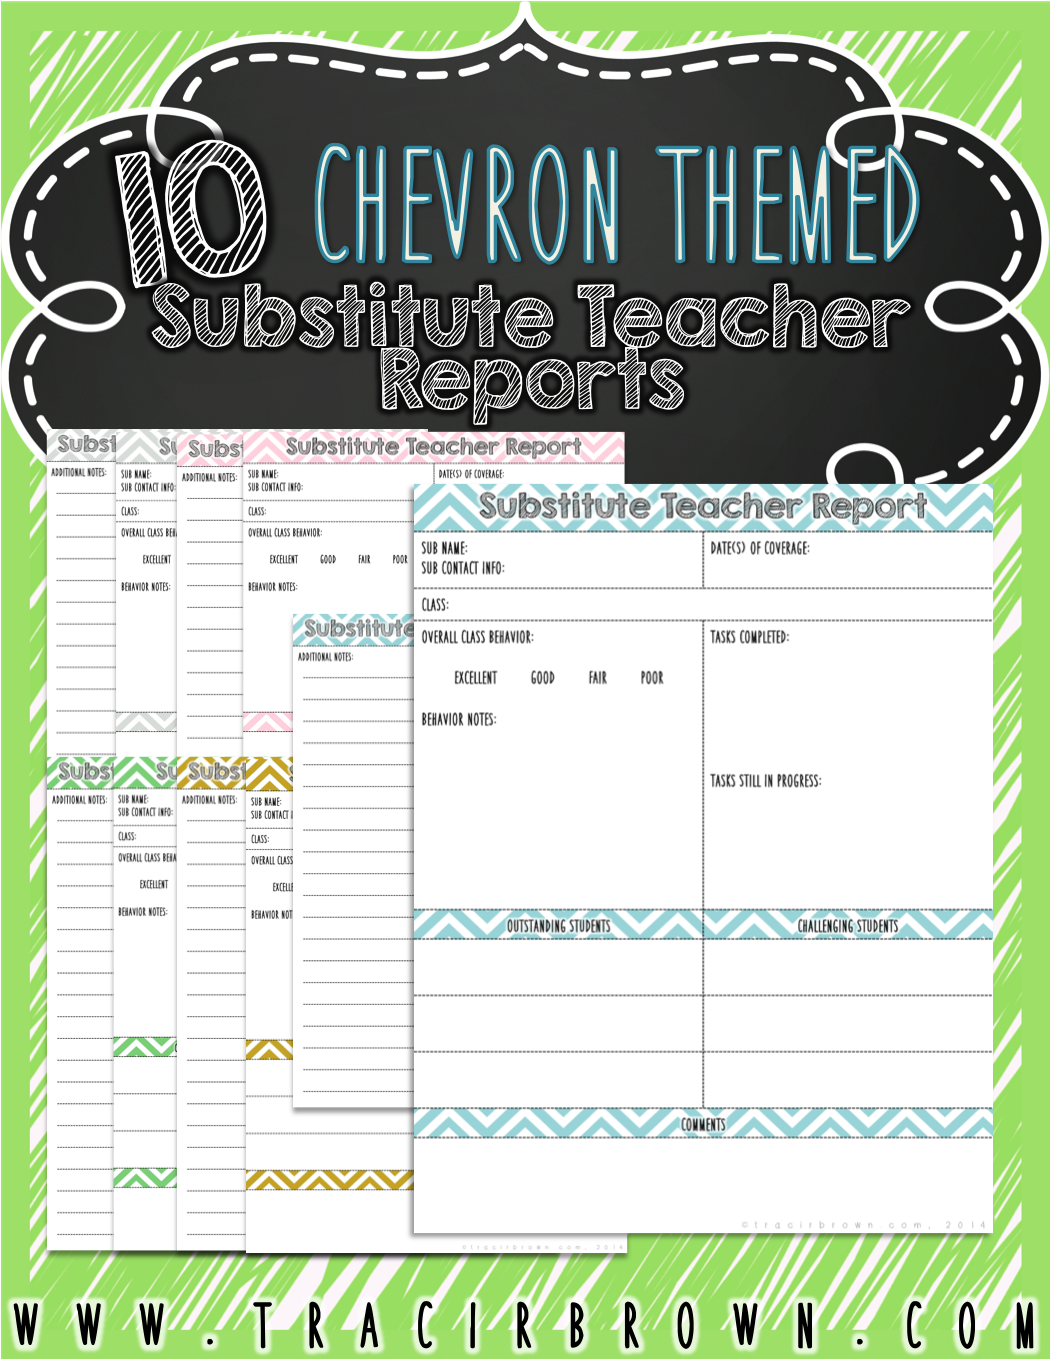 substitute teacher report pack features chevron theme and light colors for ink friendly printing